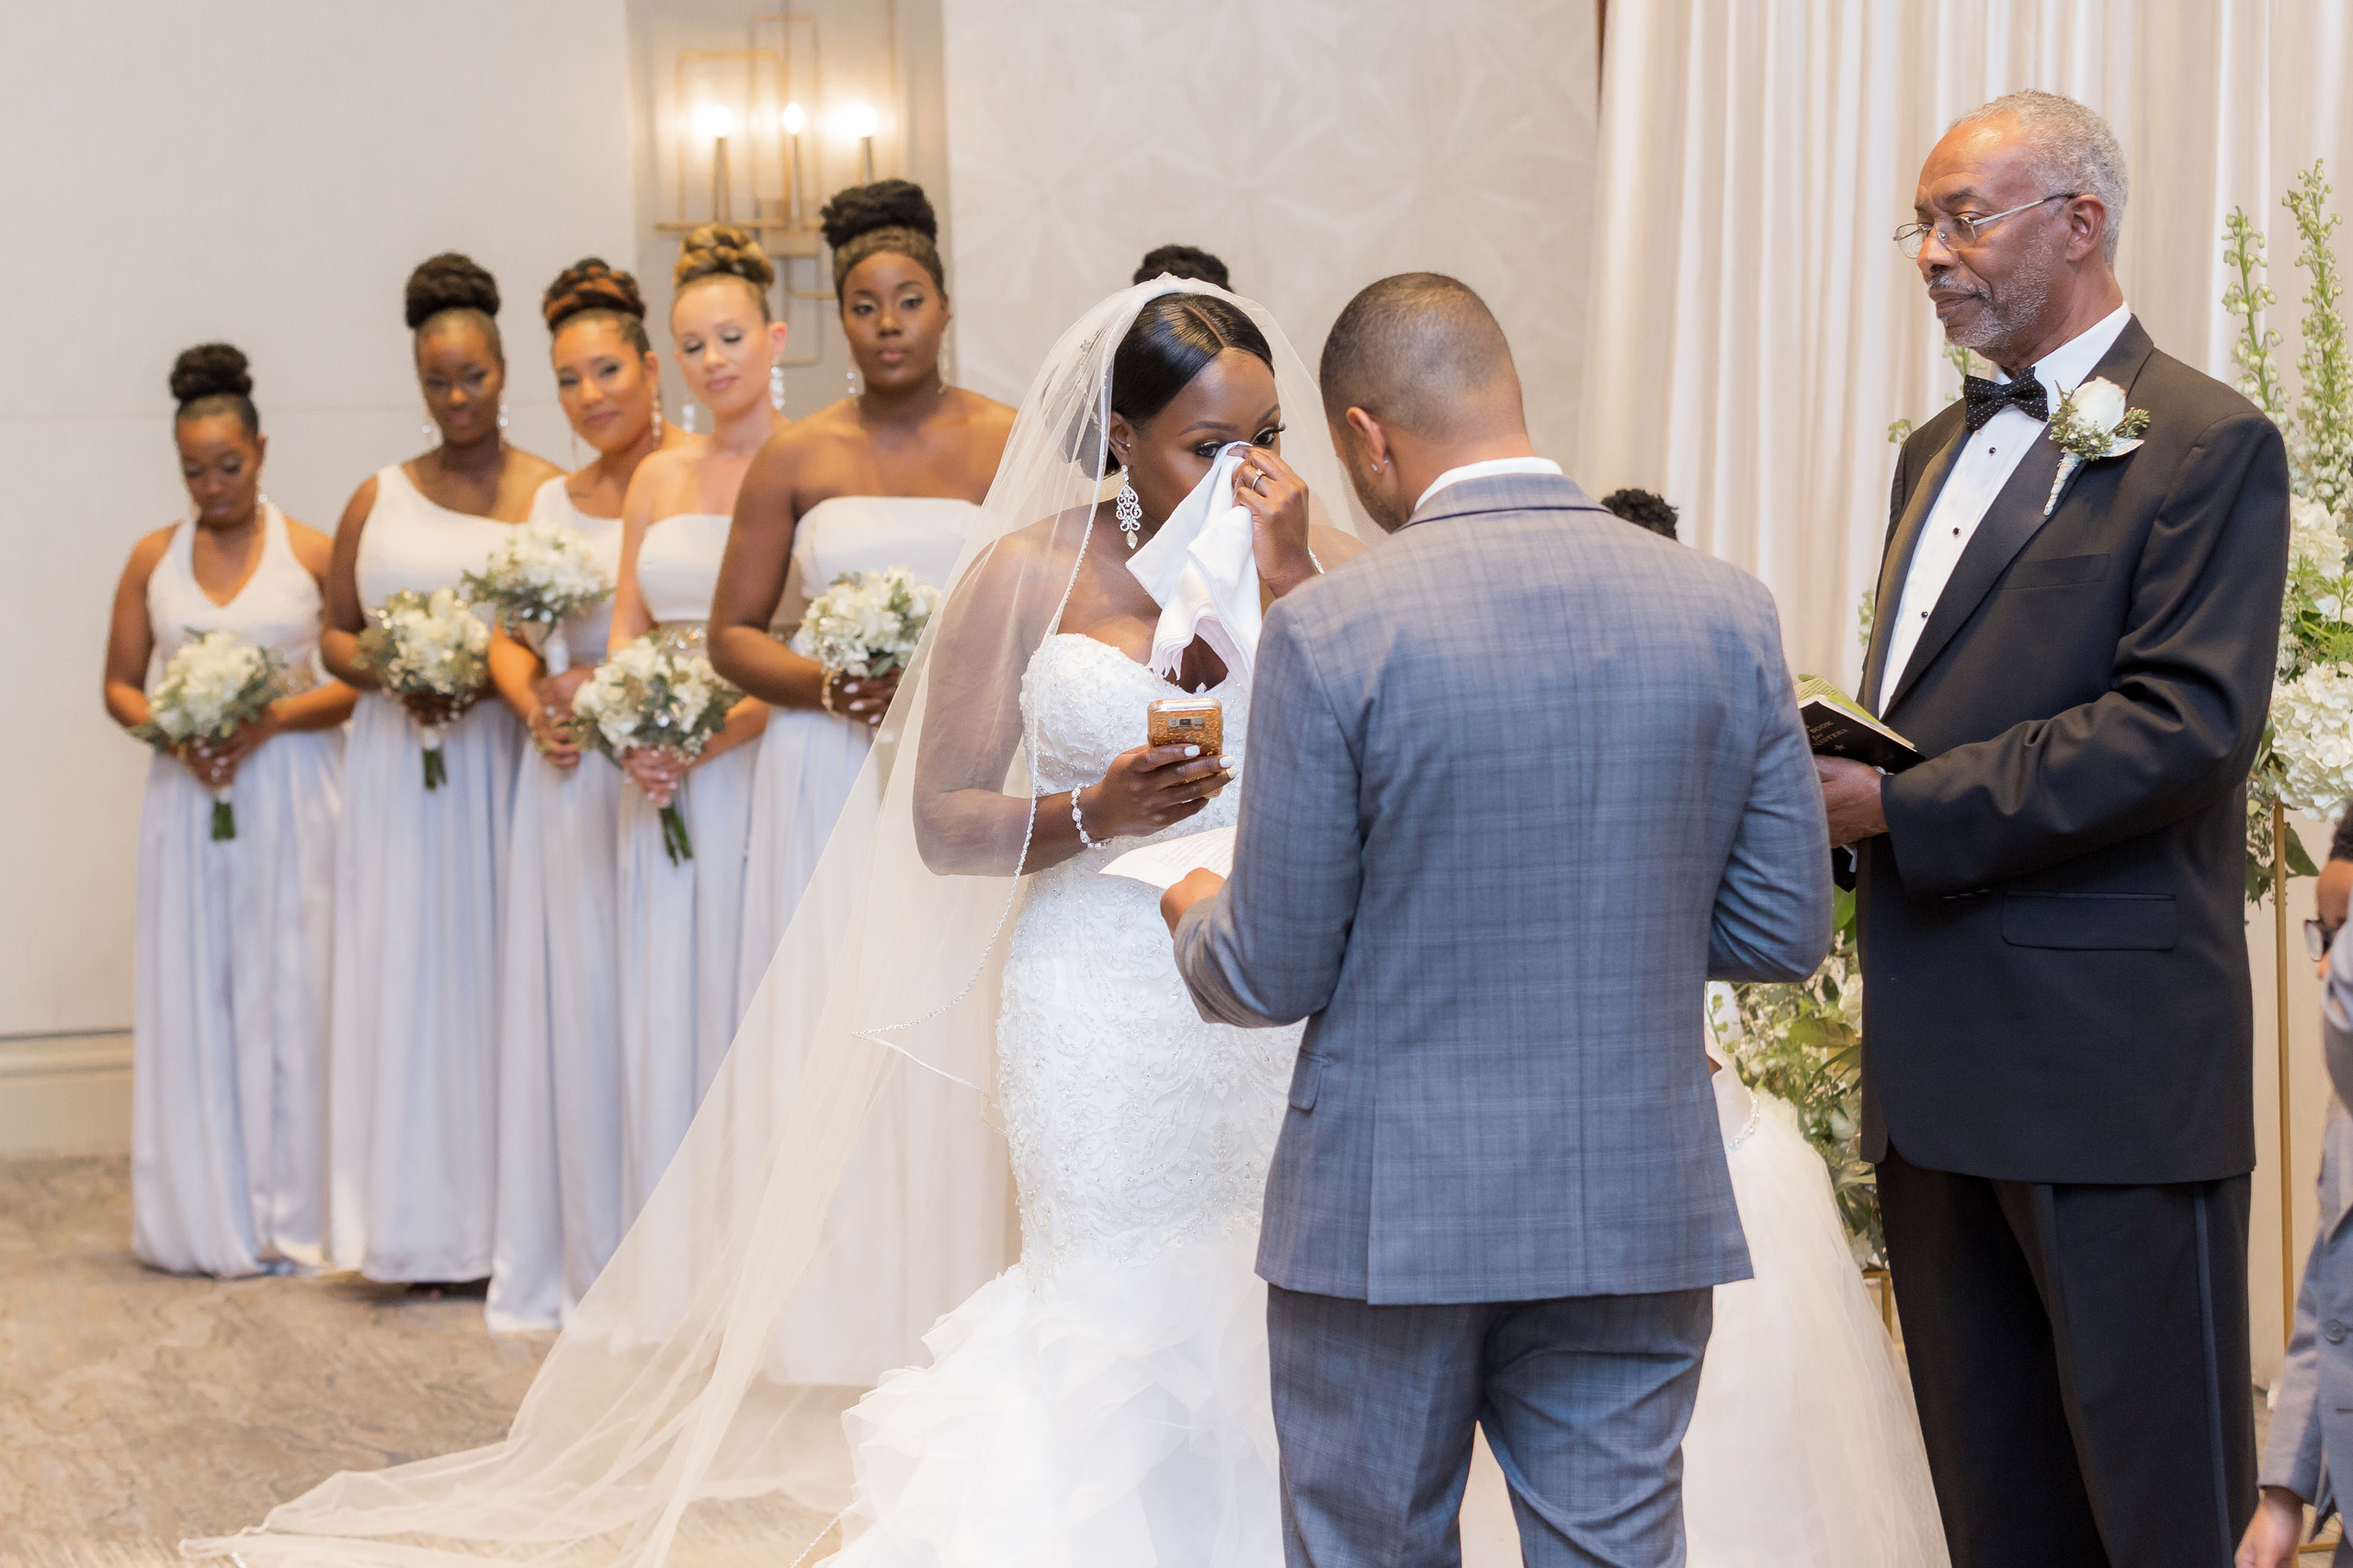 The bride tears up during the groom's vow recital during the wedding ceremony at the Hilton Main in Norfolk, Virginia.